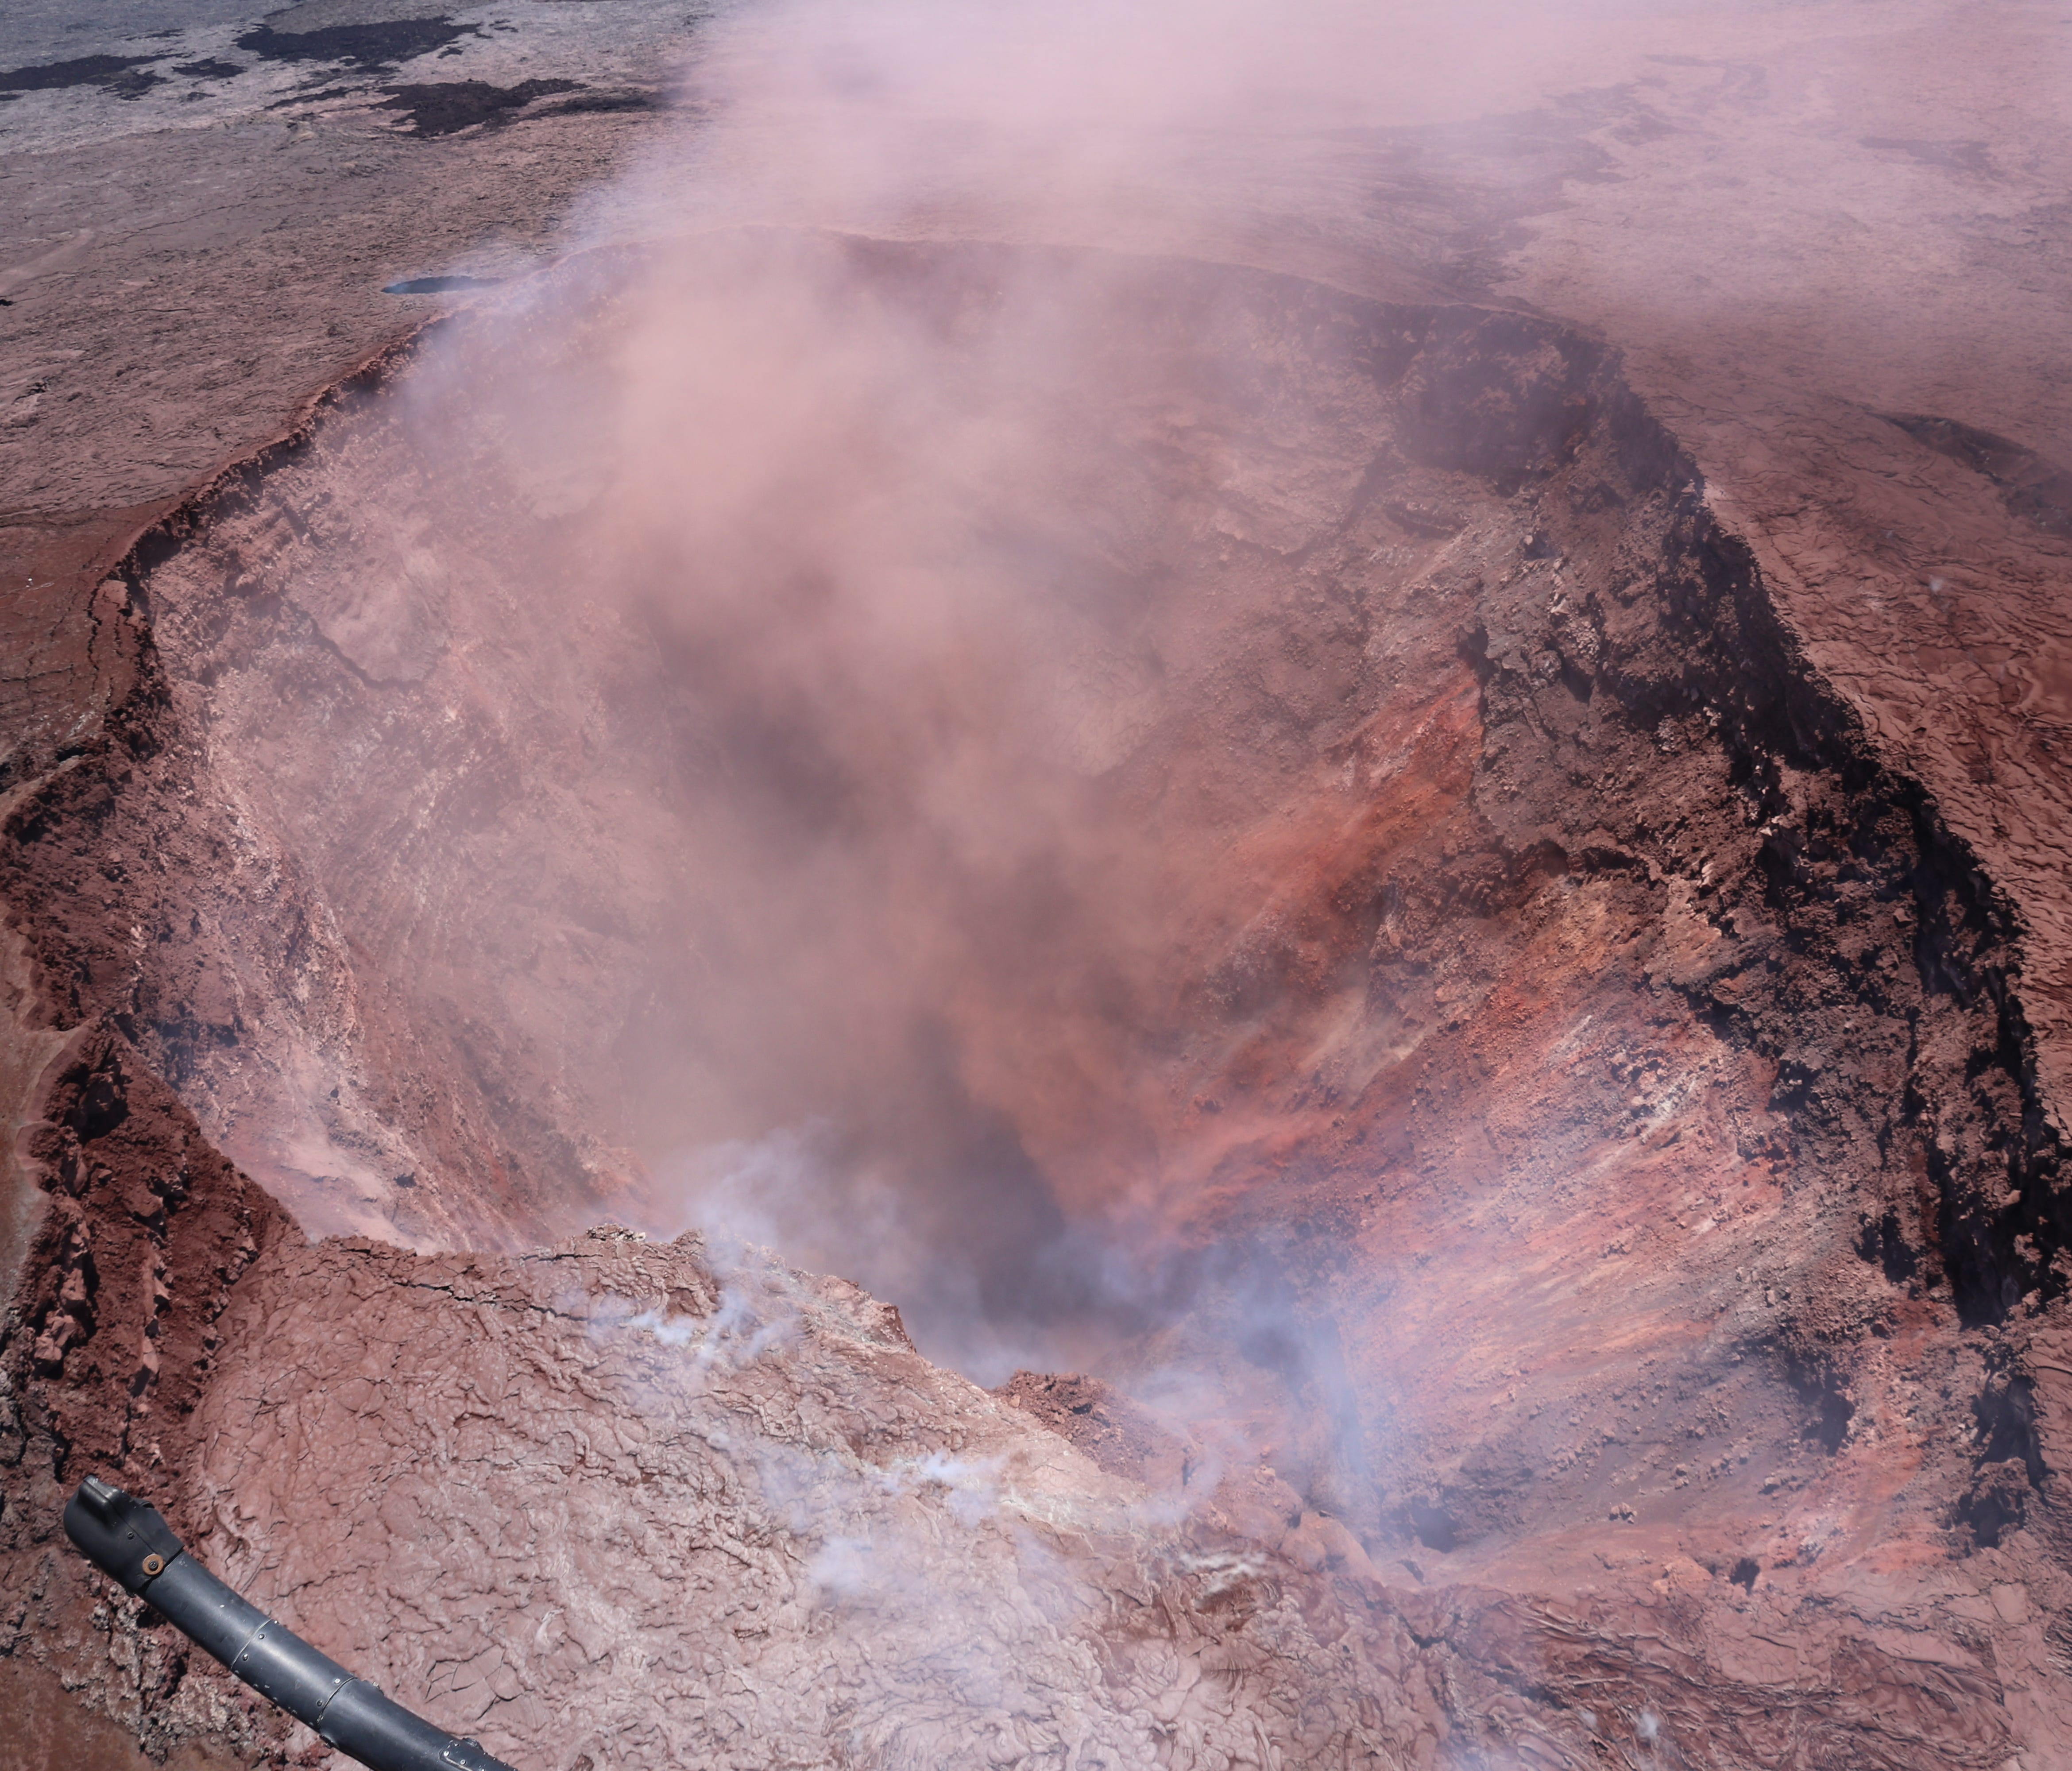 A handout photo made available by the U.S. Geological Survey (USGS) shows the collapsed crater of Pu'u 'O'o, in the eastern Rift Zone of Kilauea volcano, near Pahoa, Hawaii, on May 3, 2018.